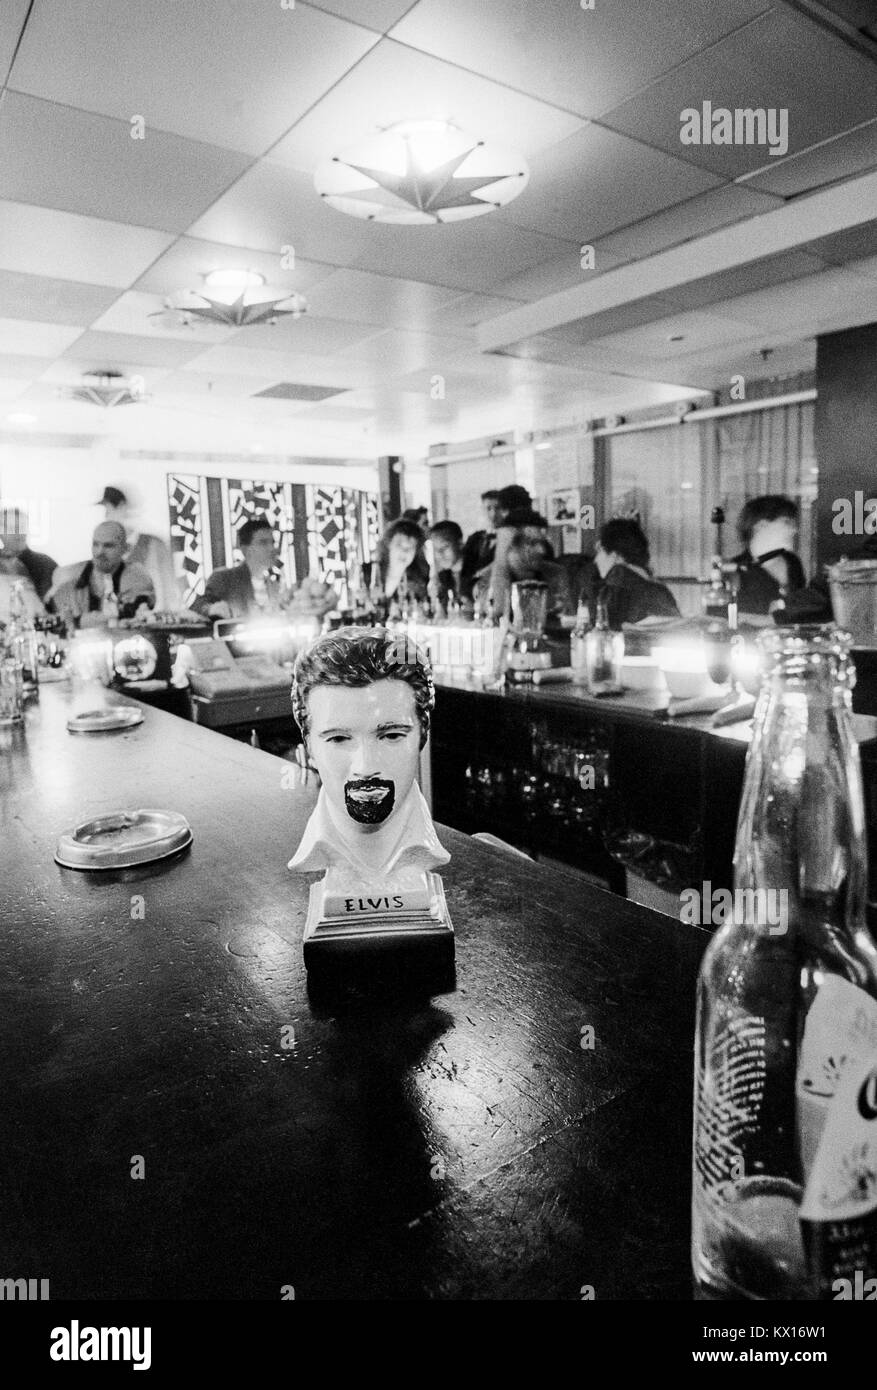 Elvis bust with goatee beard on the bar in a club in London, 1980s. - Stock Image